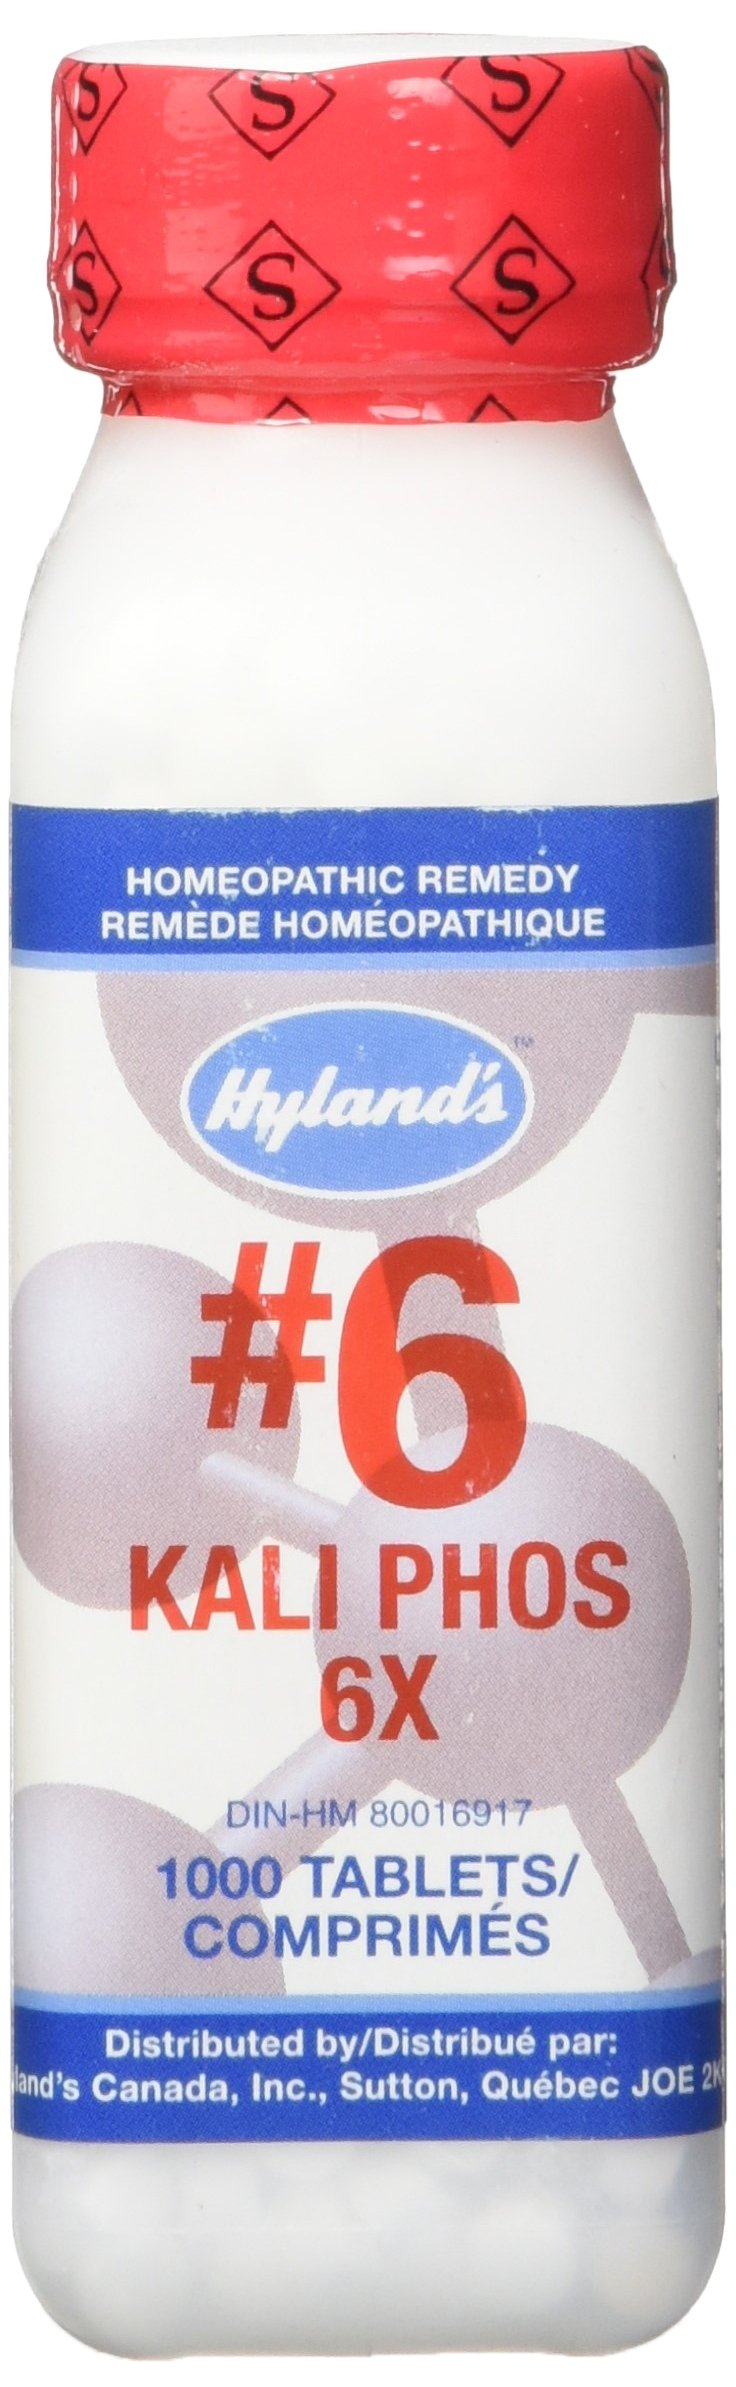 Hyland's Cell Salts #6 Kali Phosphoricum 6X Tablets, Natural Relief of Stress, Simple Nervous Tension, Headaches, 1000 Count by Hyland's Homeopathic